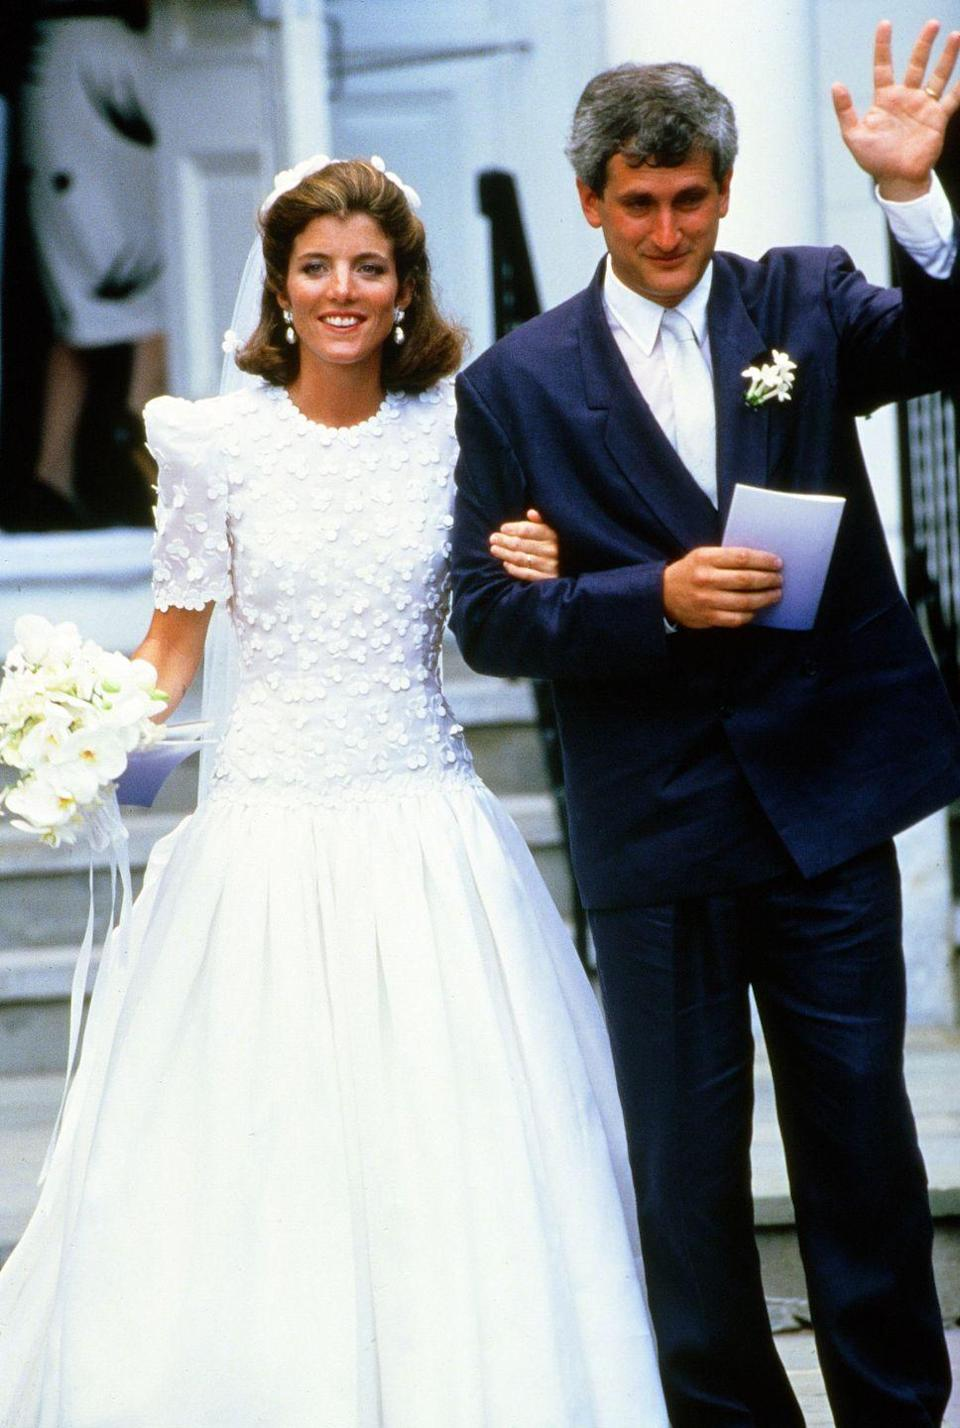 <p>Caroline and Edwin Schlossberg were married in the Church of Our Lady of Victory on July 19, 1986 in Cape Cod.</p>